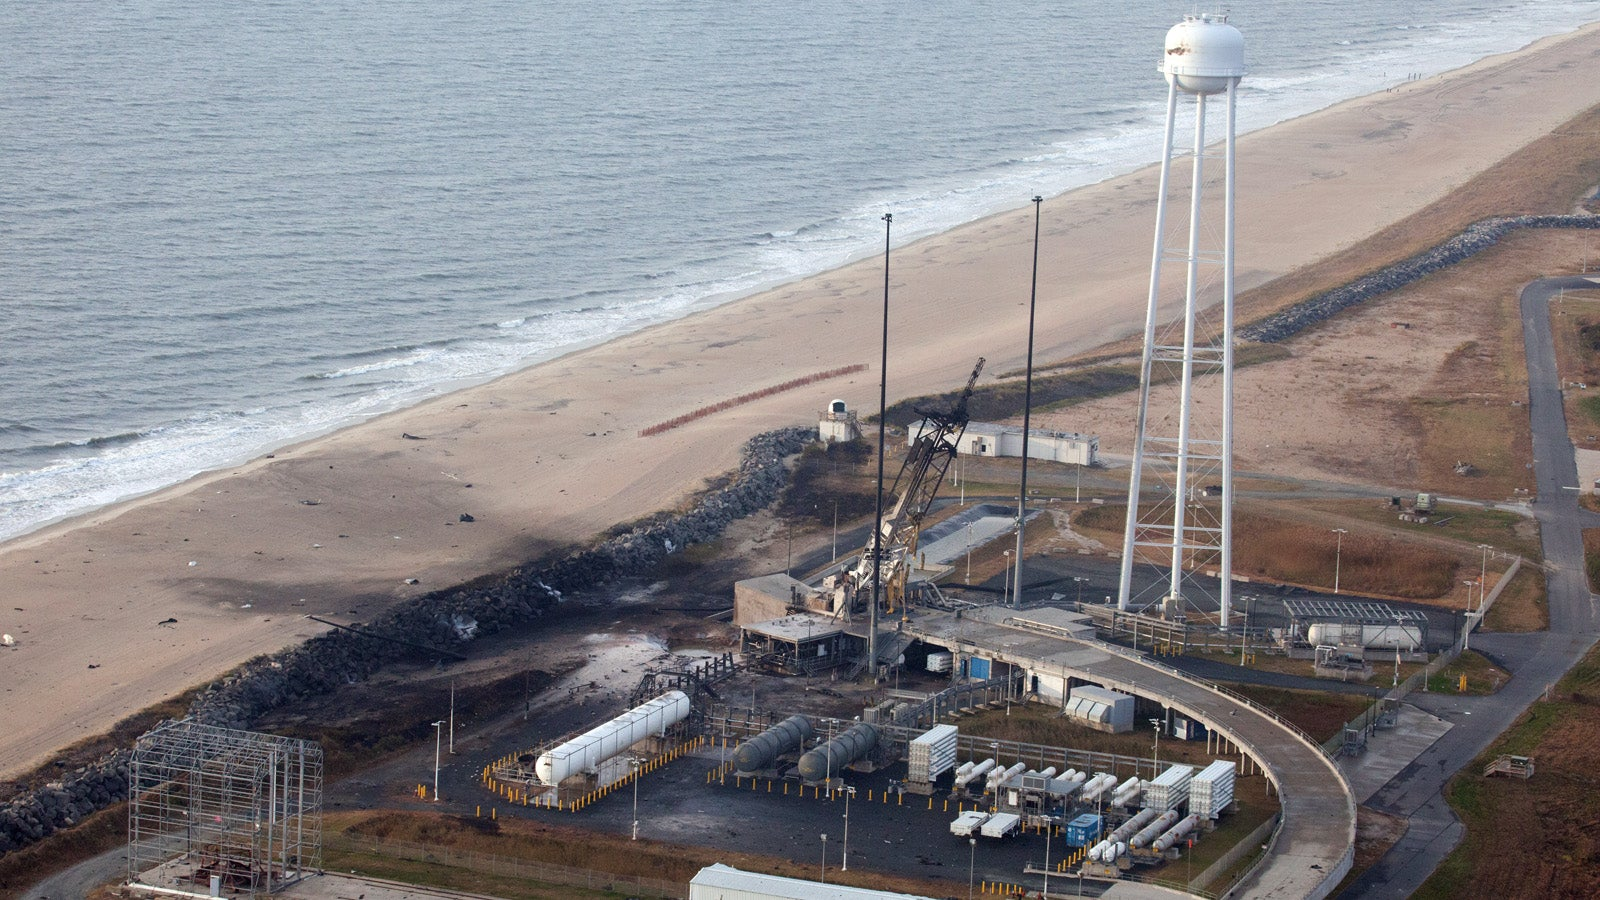 The Wallops Island Launch Facility The Day After The Antares Explosion